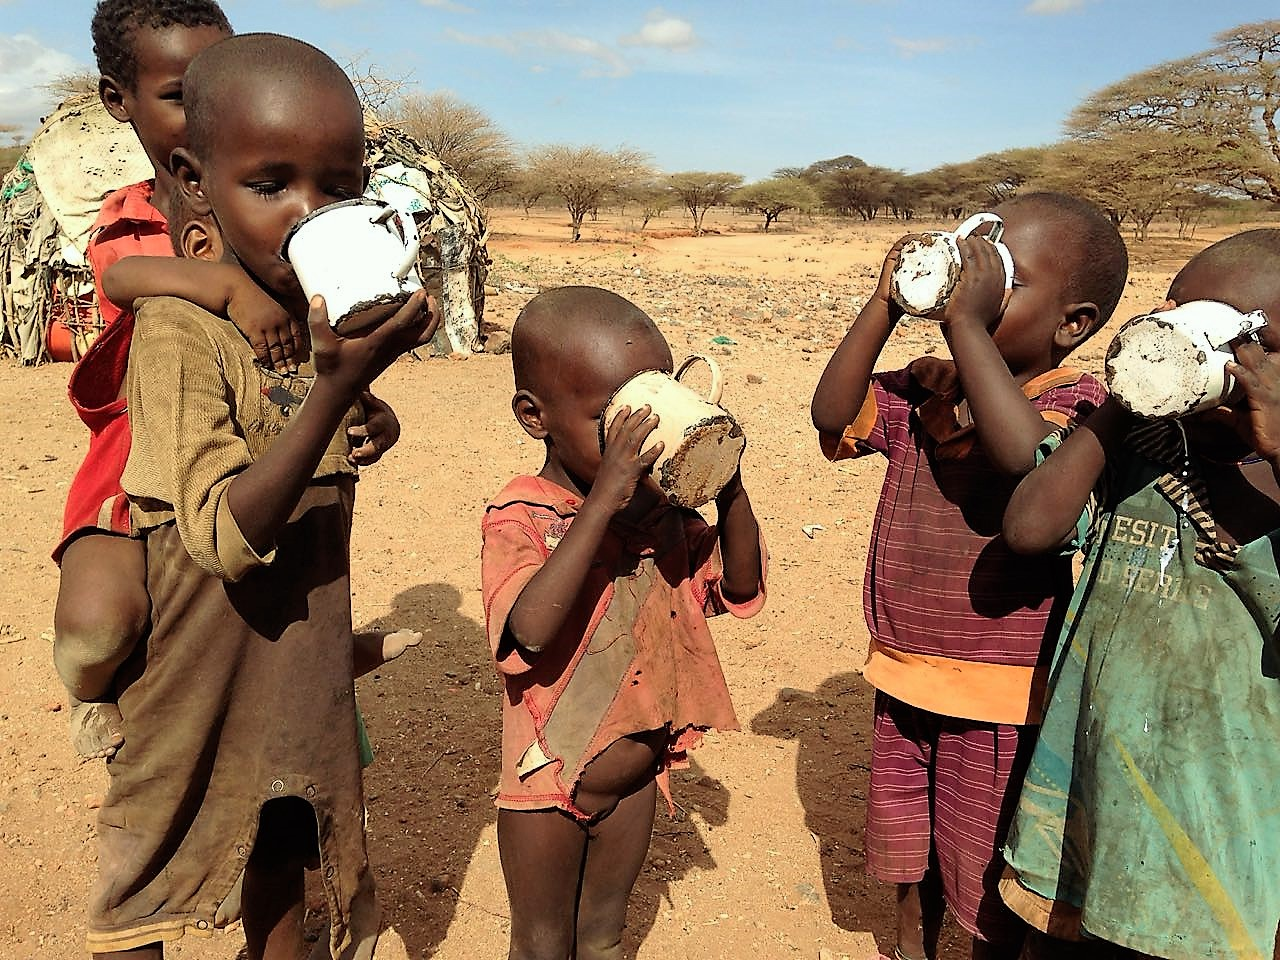 KENYA: Salesian Missions Launches Fundraising Appeal to Assist Families Suffering from Drought